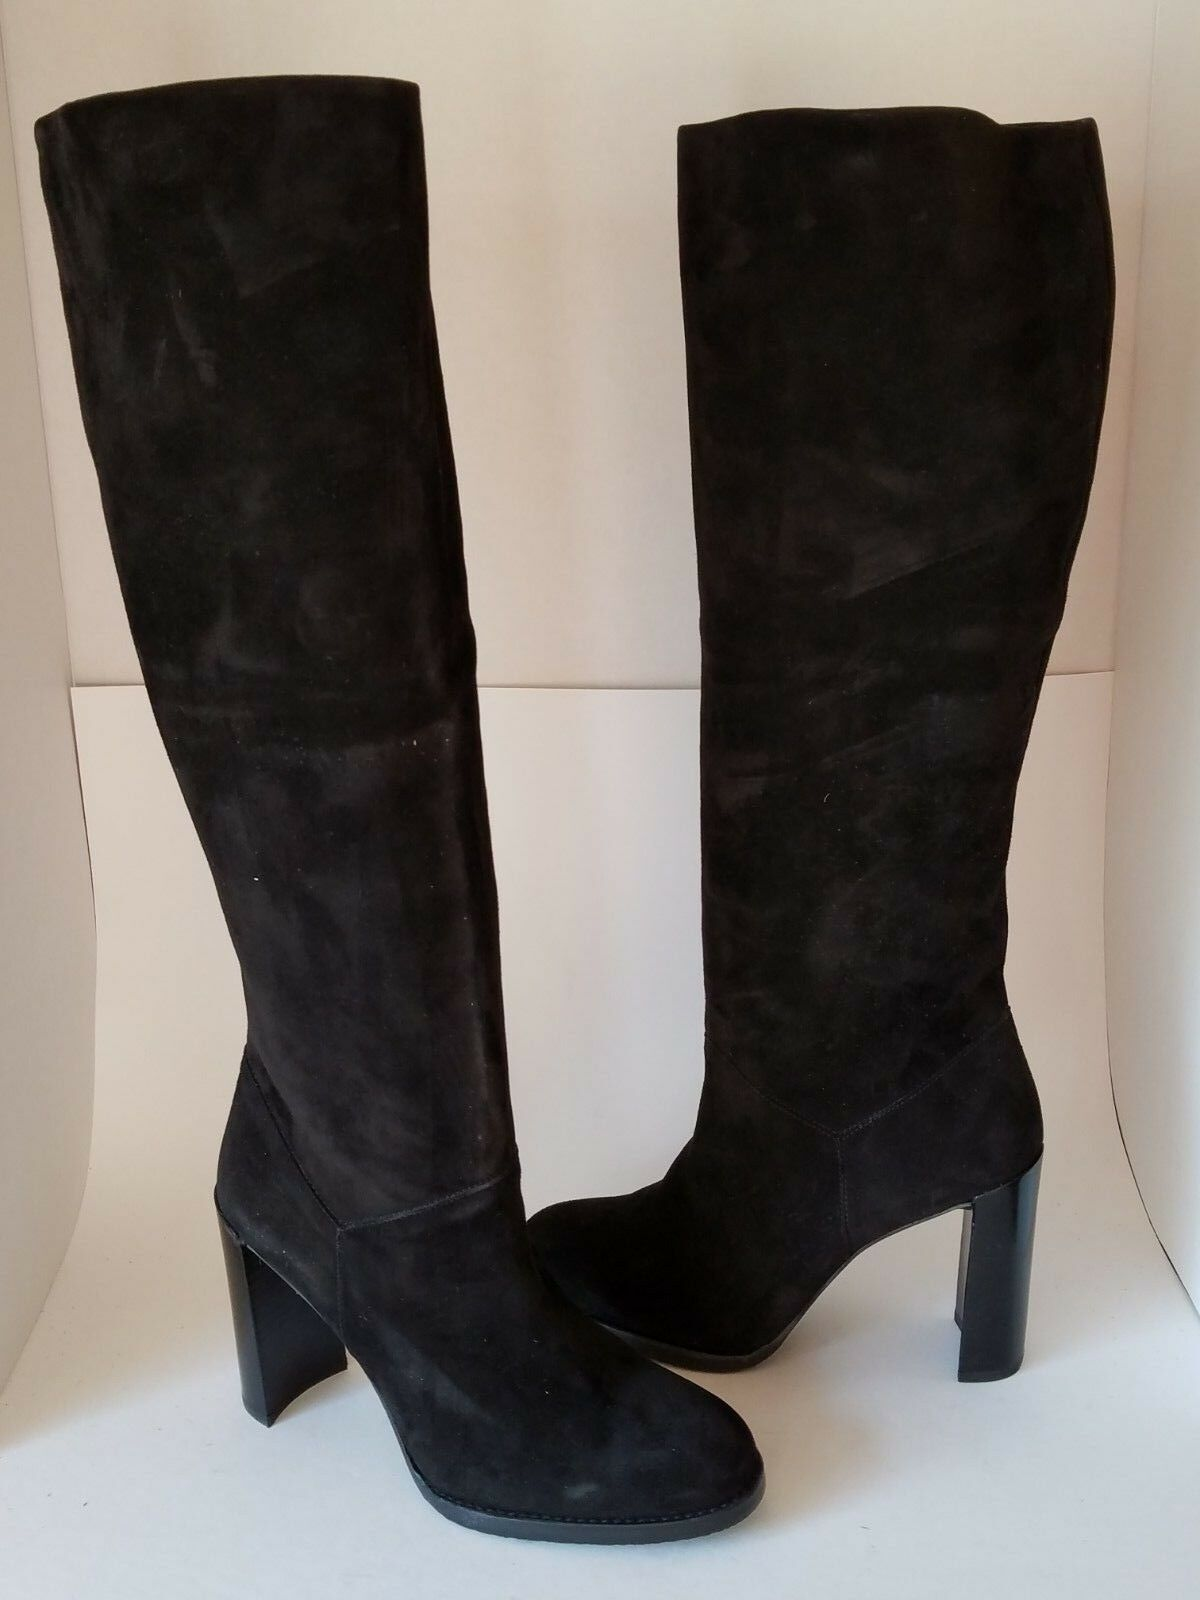 Sz 9.5 NEW STUART WEITZMAN BOOTS BOOTS BOOTS knee High womens YUM Black Suede 41166c